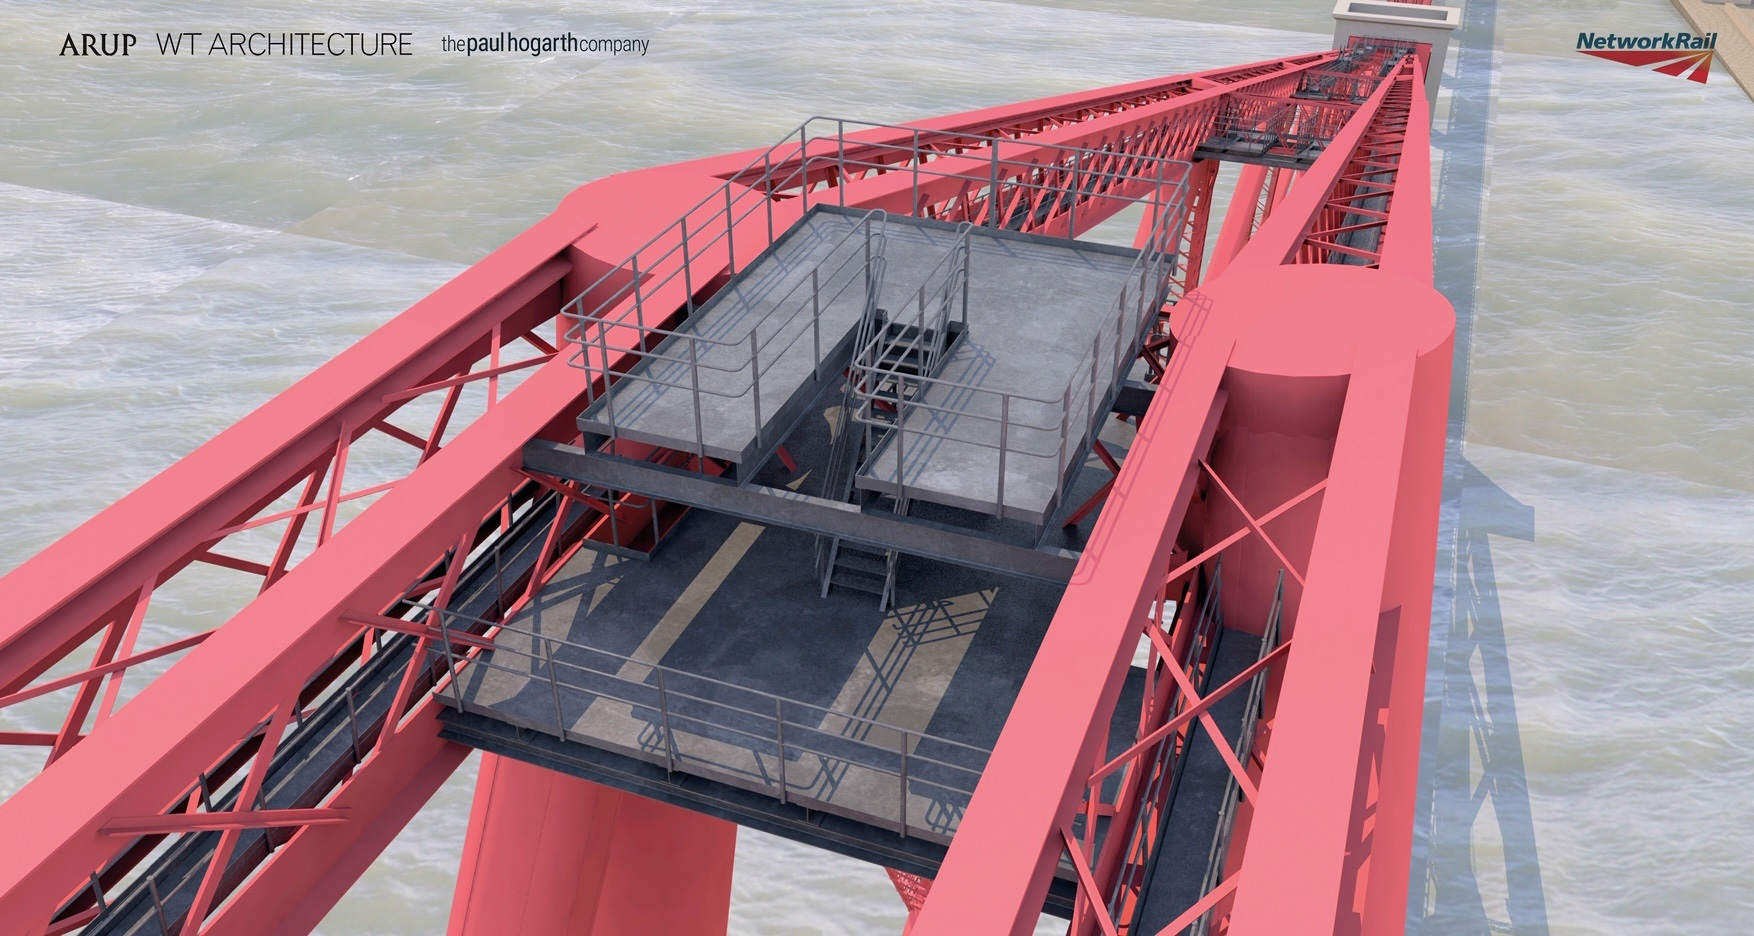 Plans for a viewing platform on top of Forth Bridge have been approved.